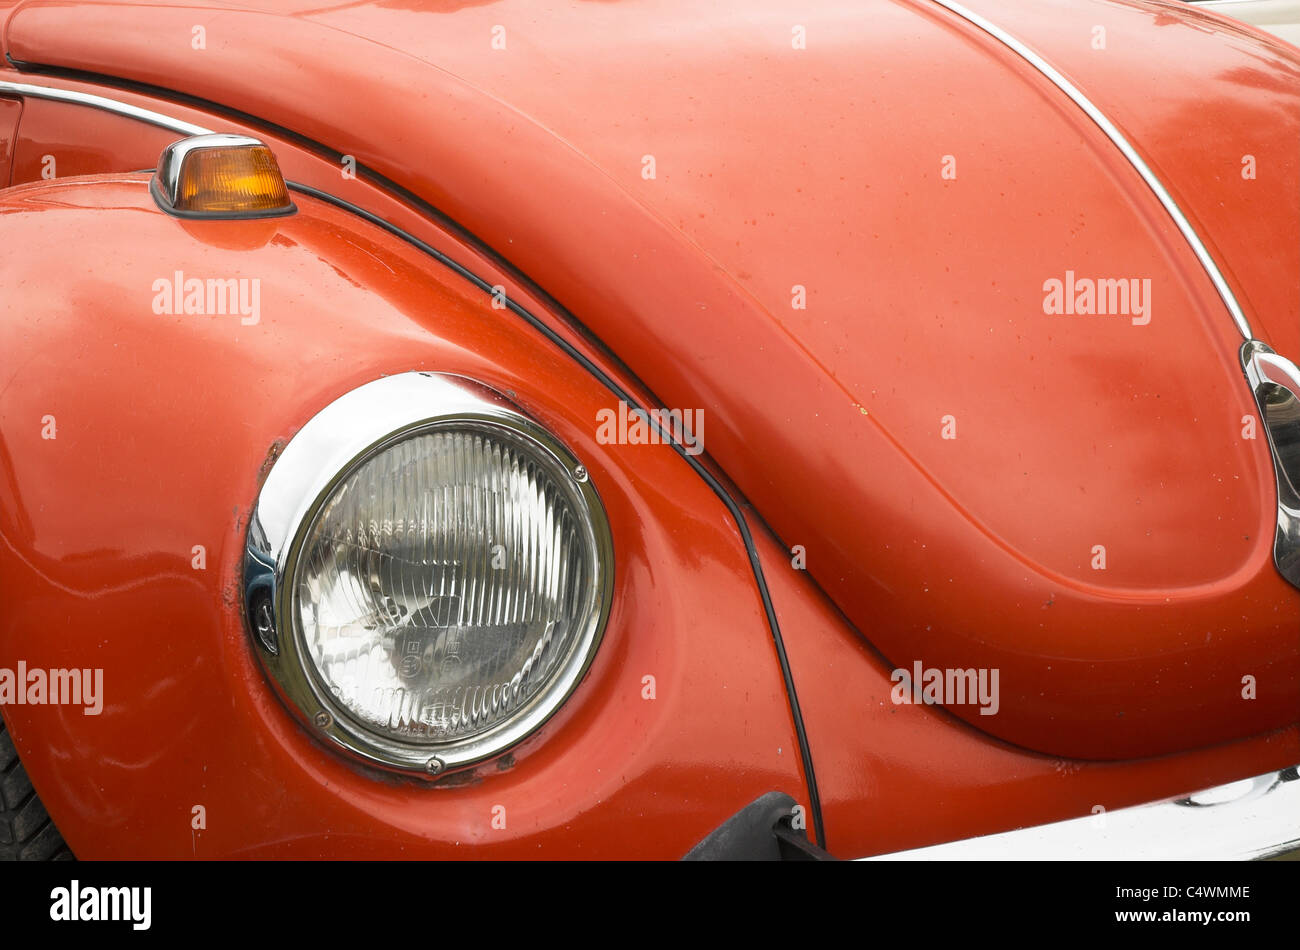 An old Mk1 VW Beetle - Stock Image